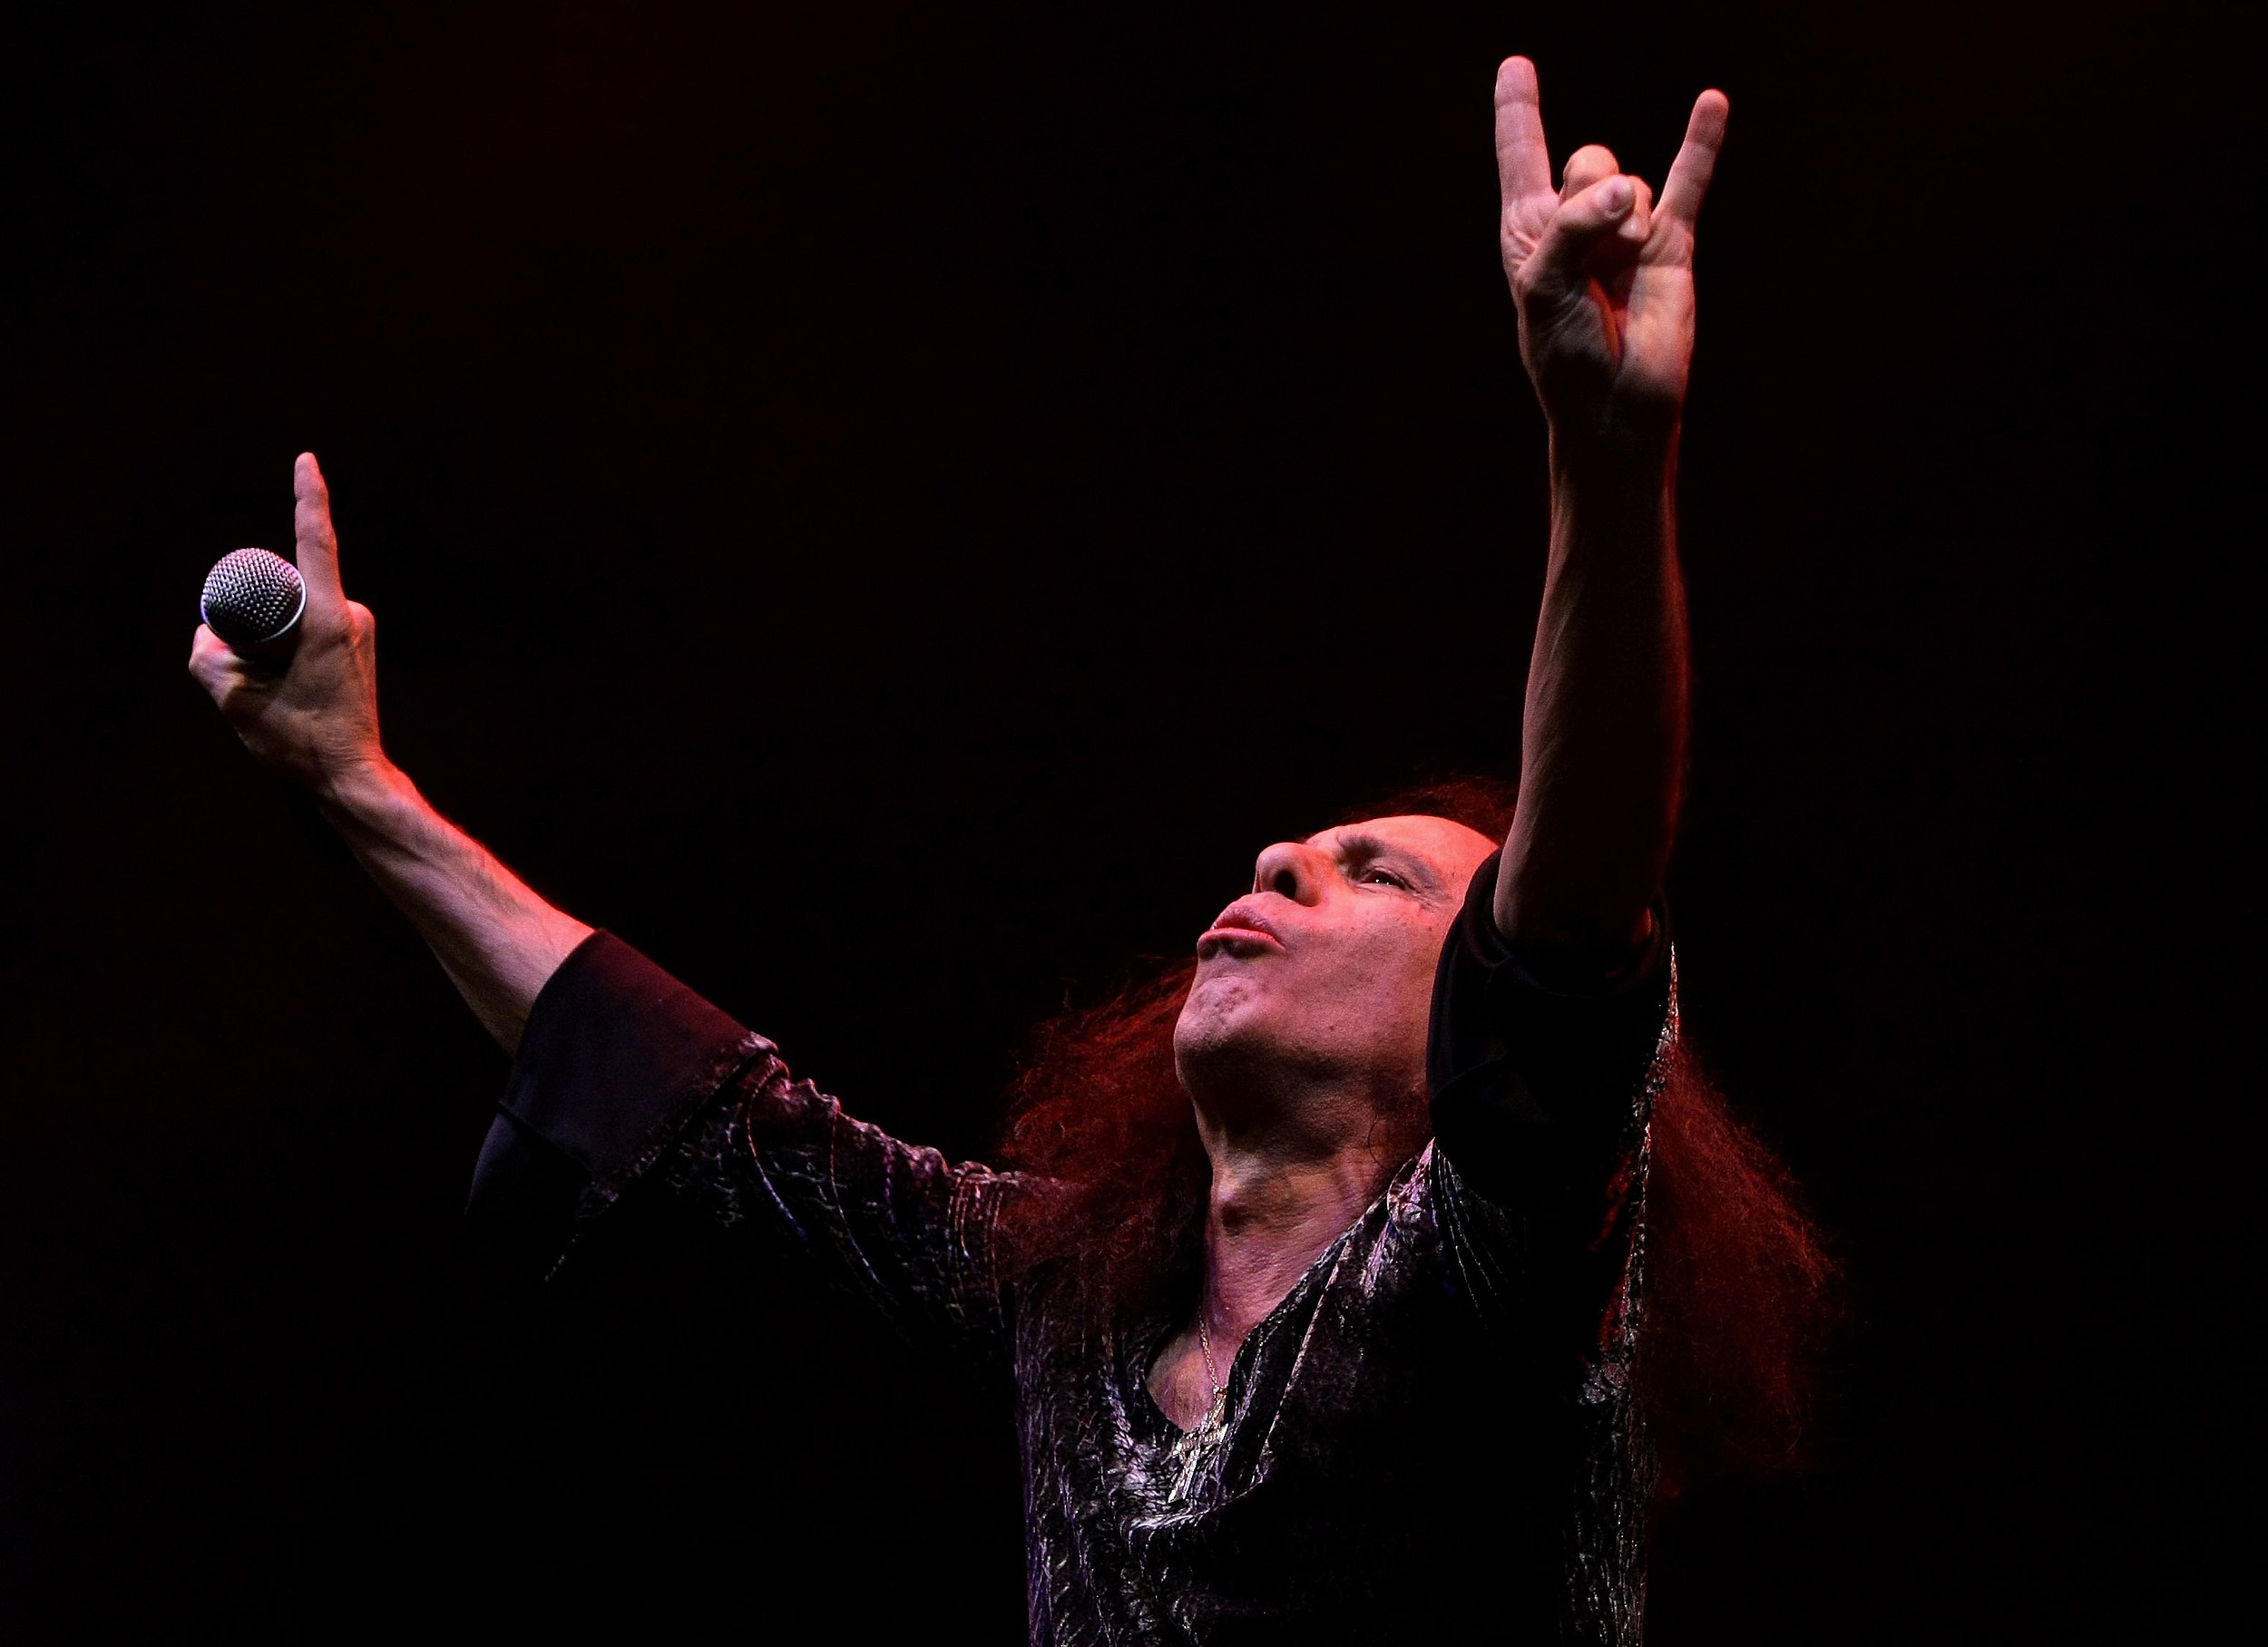 tribute to ronnie james dio features metallica, halestorm and more